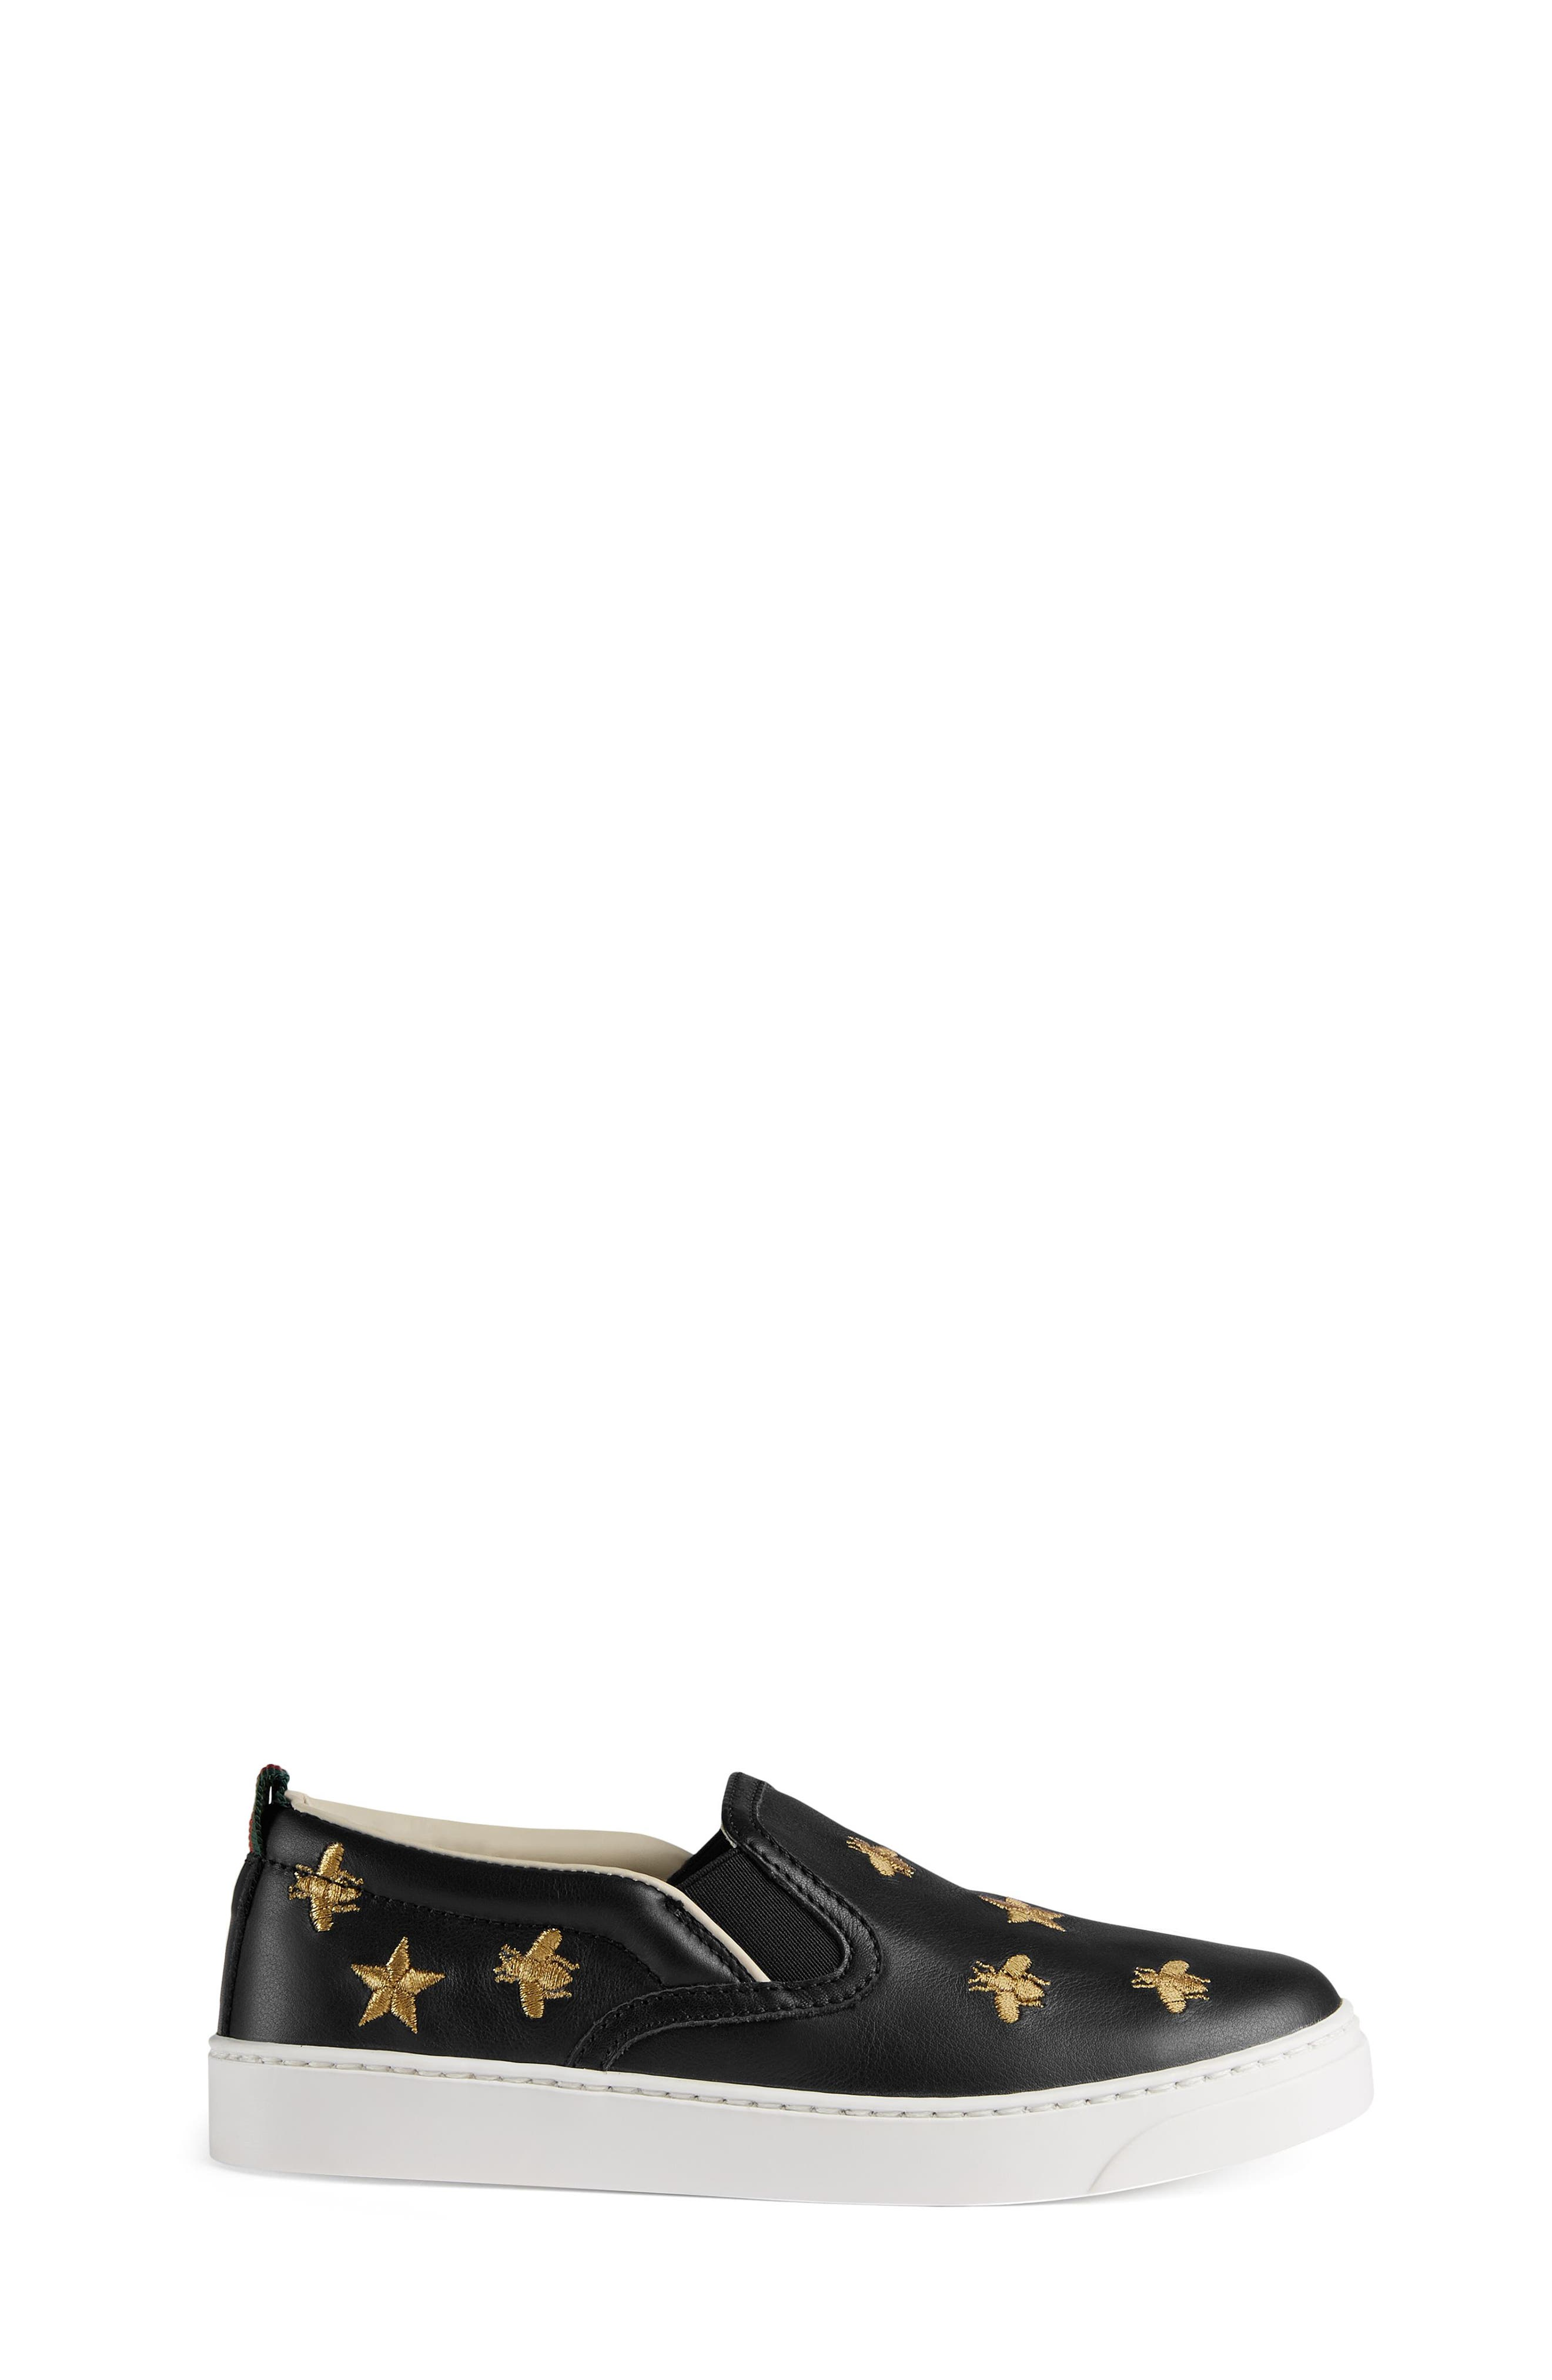 Dublin Bees and Stars Slip-On Sneaker,                             Alternate thumbnail 3, color,                             BLACK/GOLD STARS